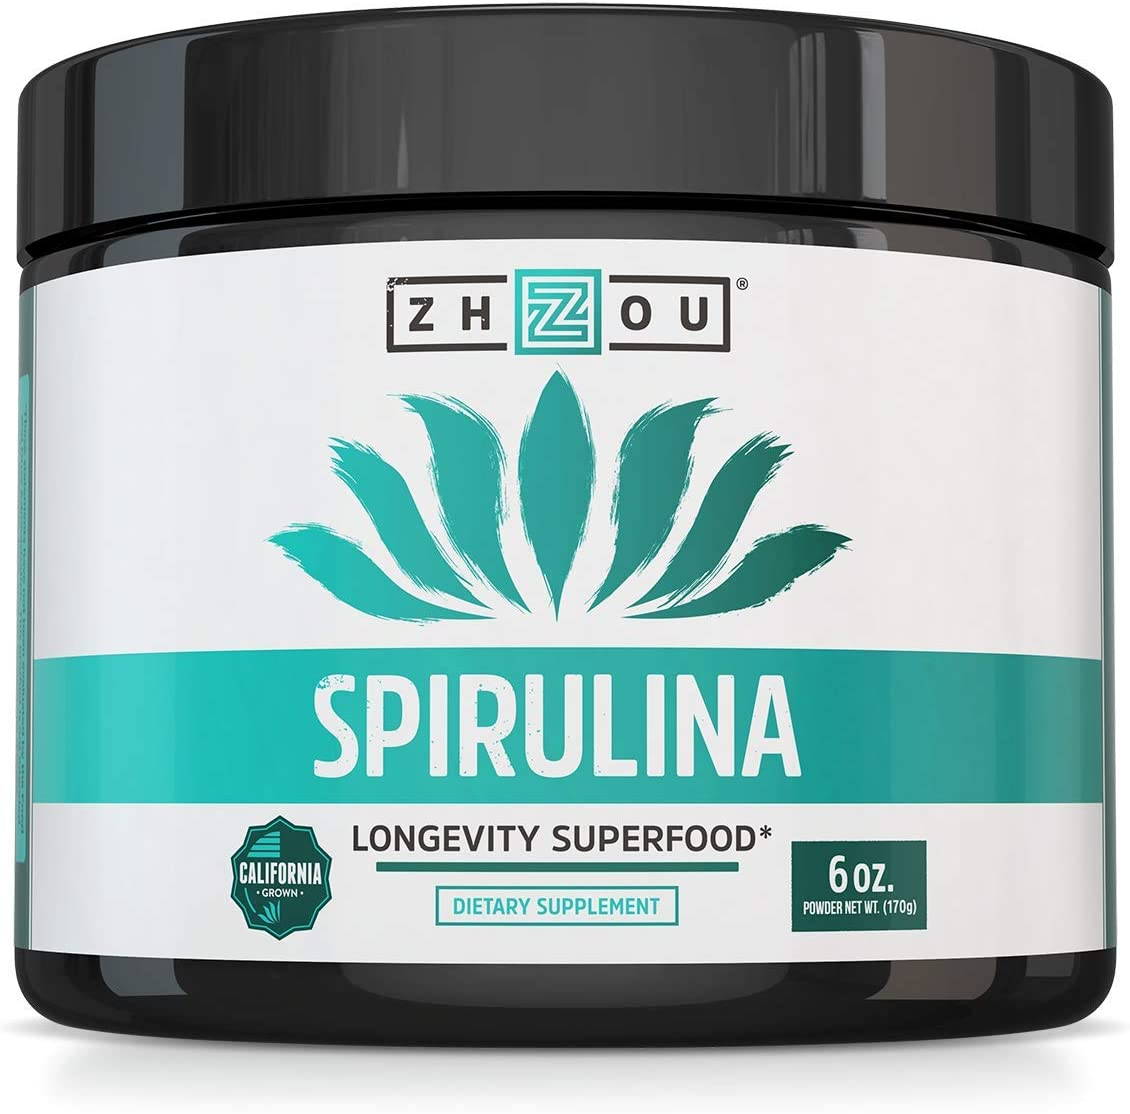 Non-GMO Spirulina Powder – Sustainably Grown in California – Highest Quality Spirulina on Earth – 100 Vegetarian, Gluten Free Non-Irradiated – Blue Green Algae Perfect for Smoothies, Juices More